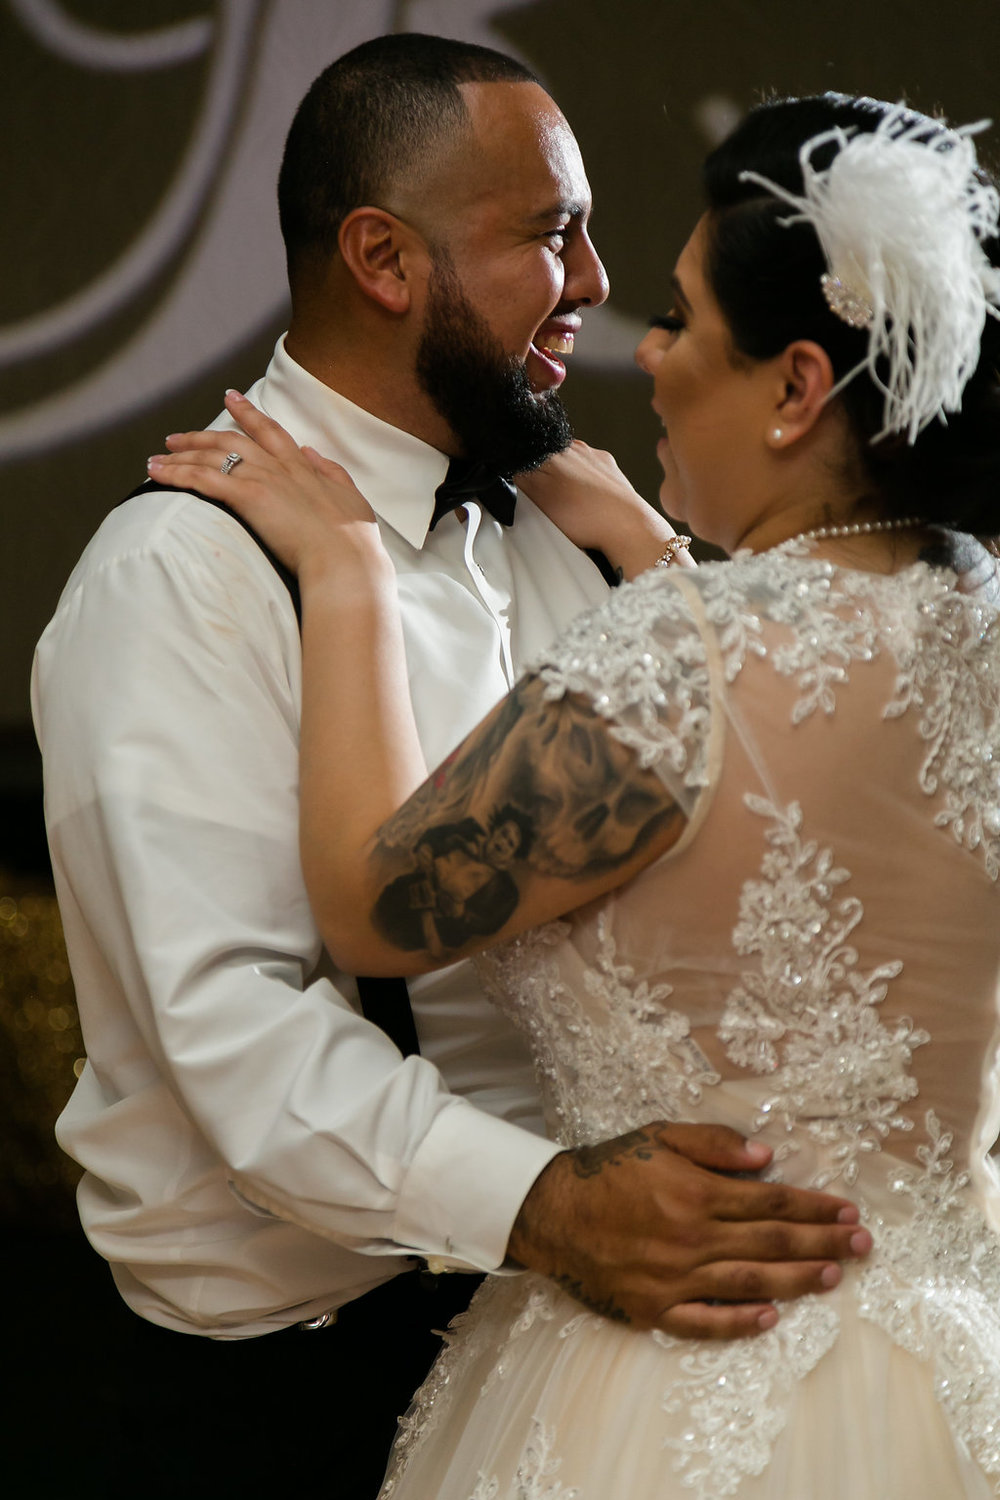 AshleyandBryanWedding20171243.jpg